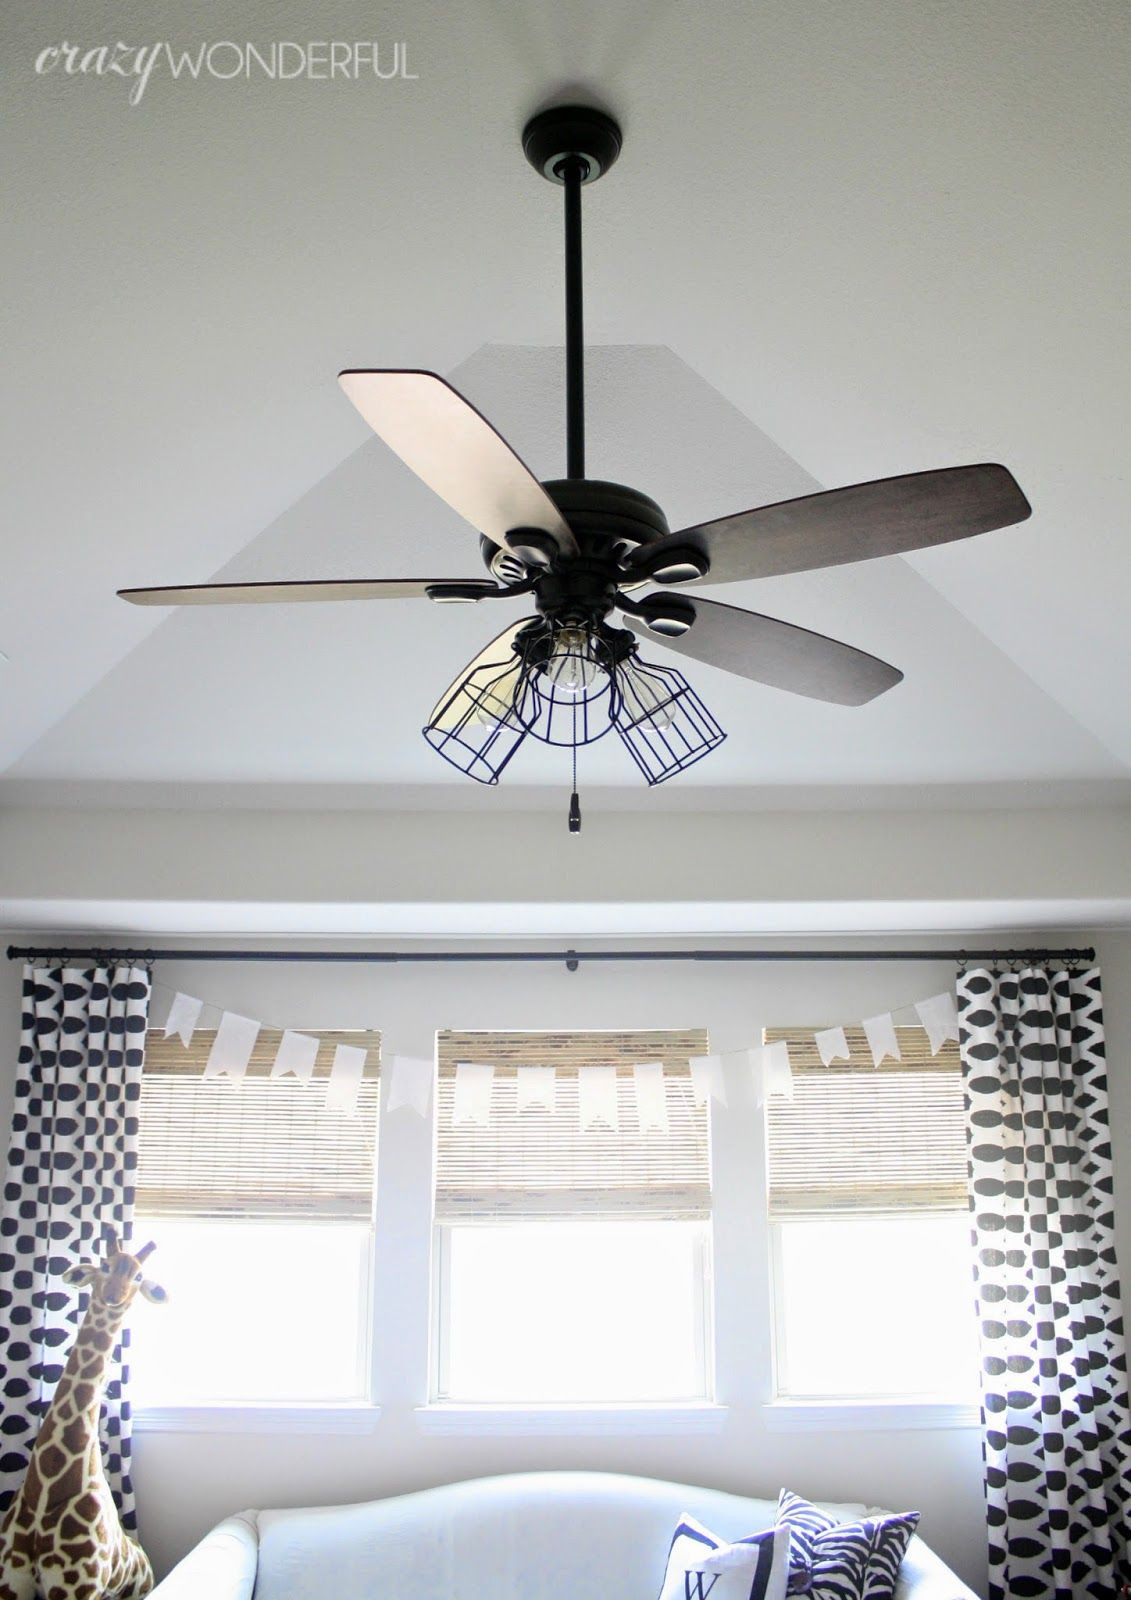 ceiling fan in living room ideas - Best 25 Decorative ceiling fans ideas on Pinterest